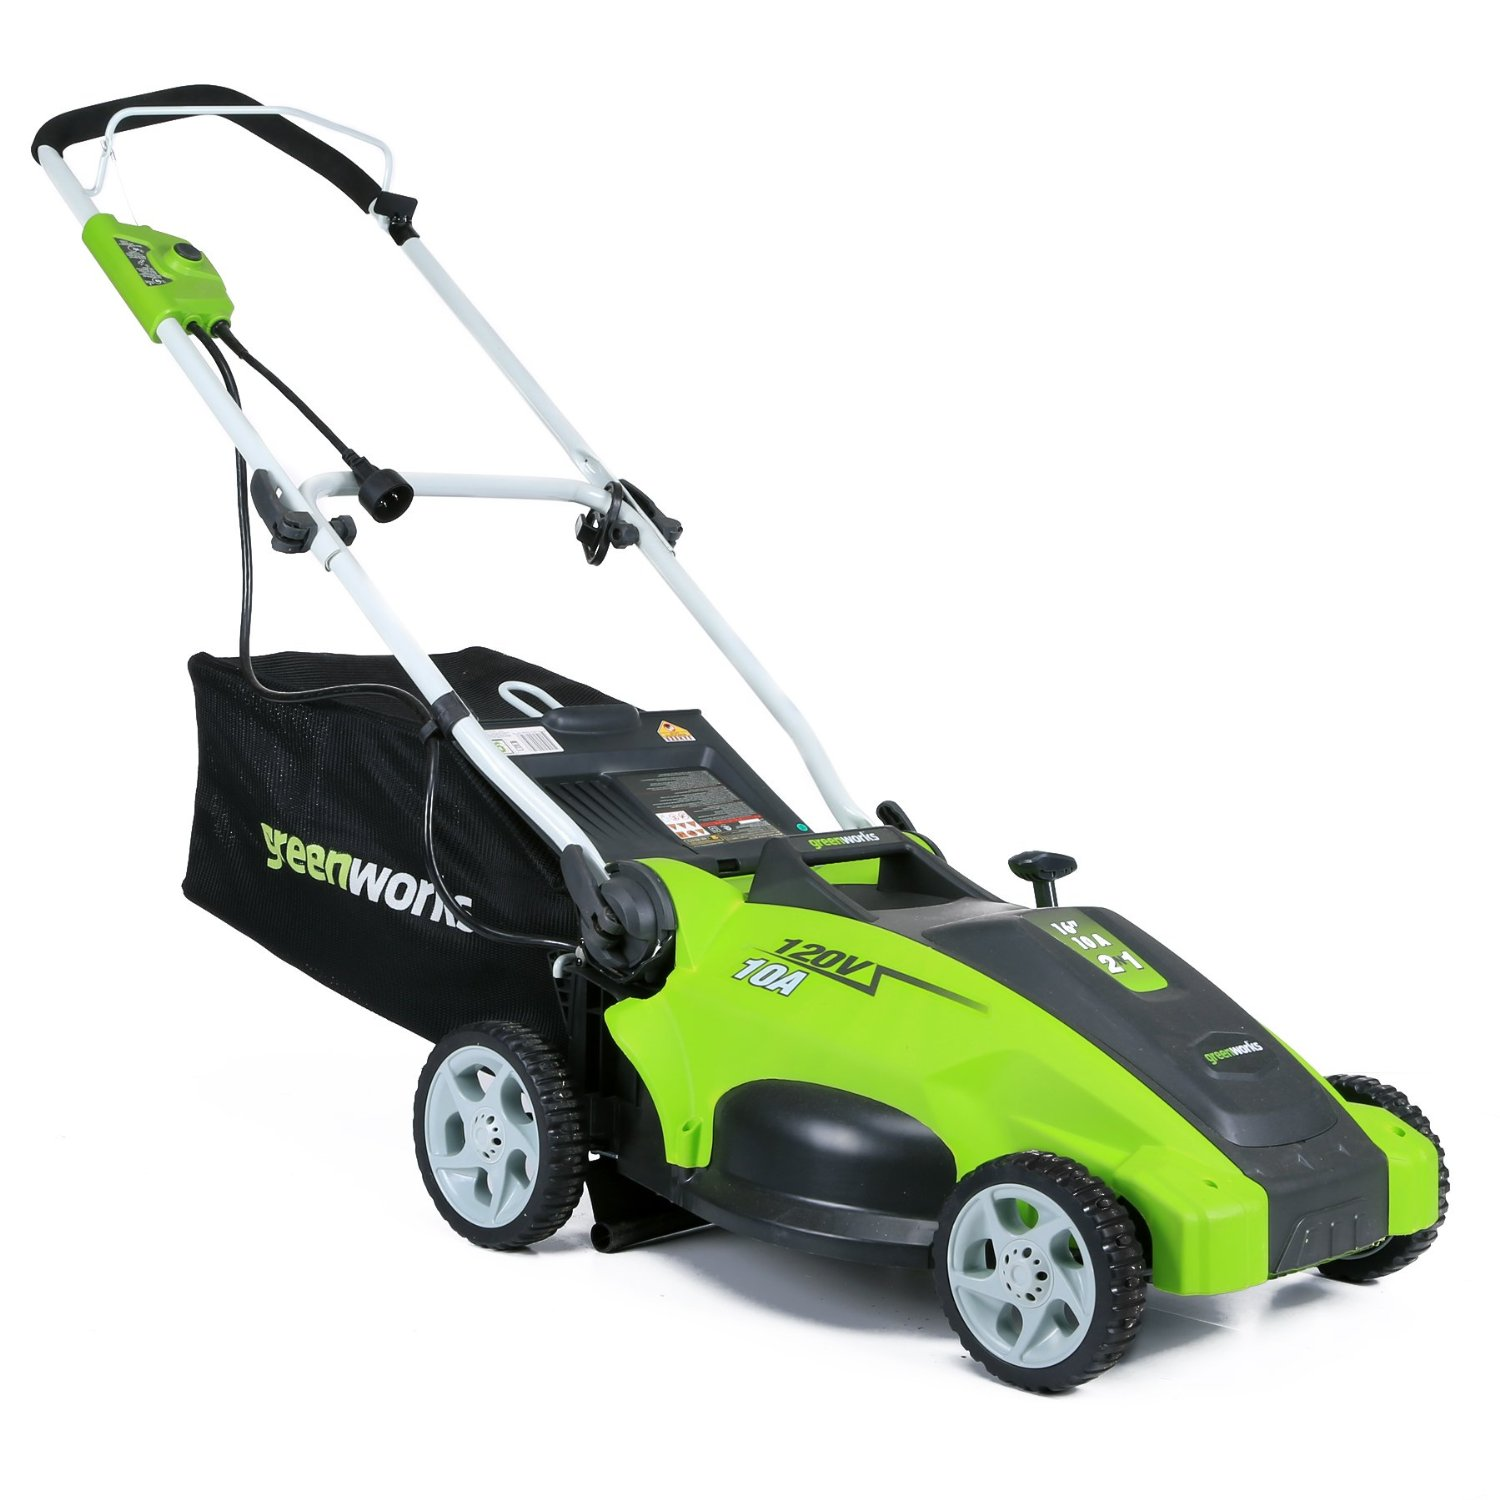 Image result for GreenWorks lawn mower reviews